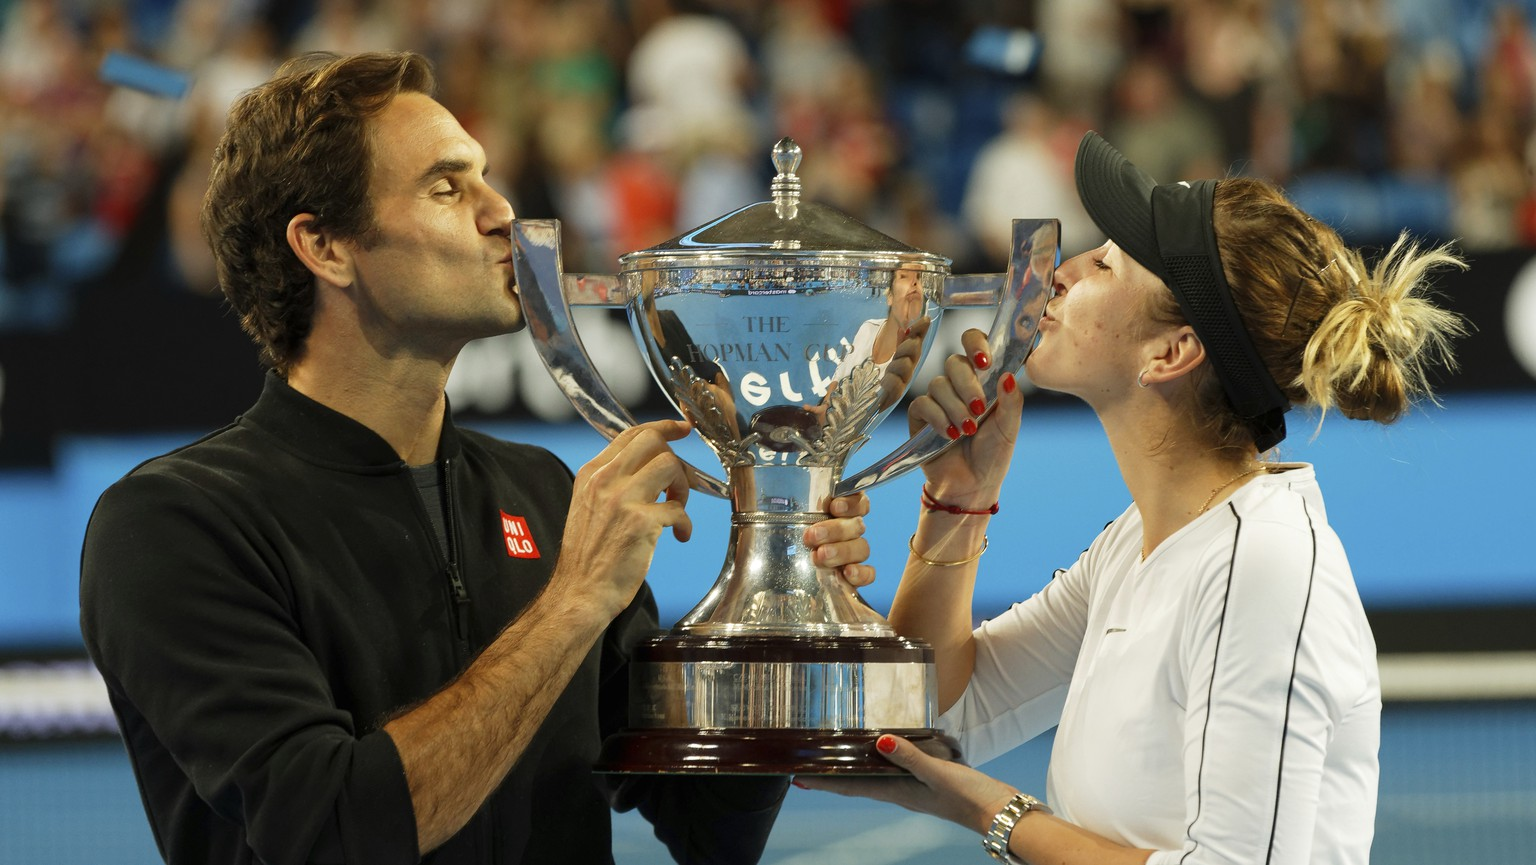 Switzerland's Roger Federer and Belinda Bencic kiss the trophy after winning the final against Alexander Zverev and Angelique Kerber of Germany at the Hopman Cup in Perth, Australia, Saturday Jan. 5, 2019. (AP Photo/Trevor Collens)